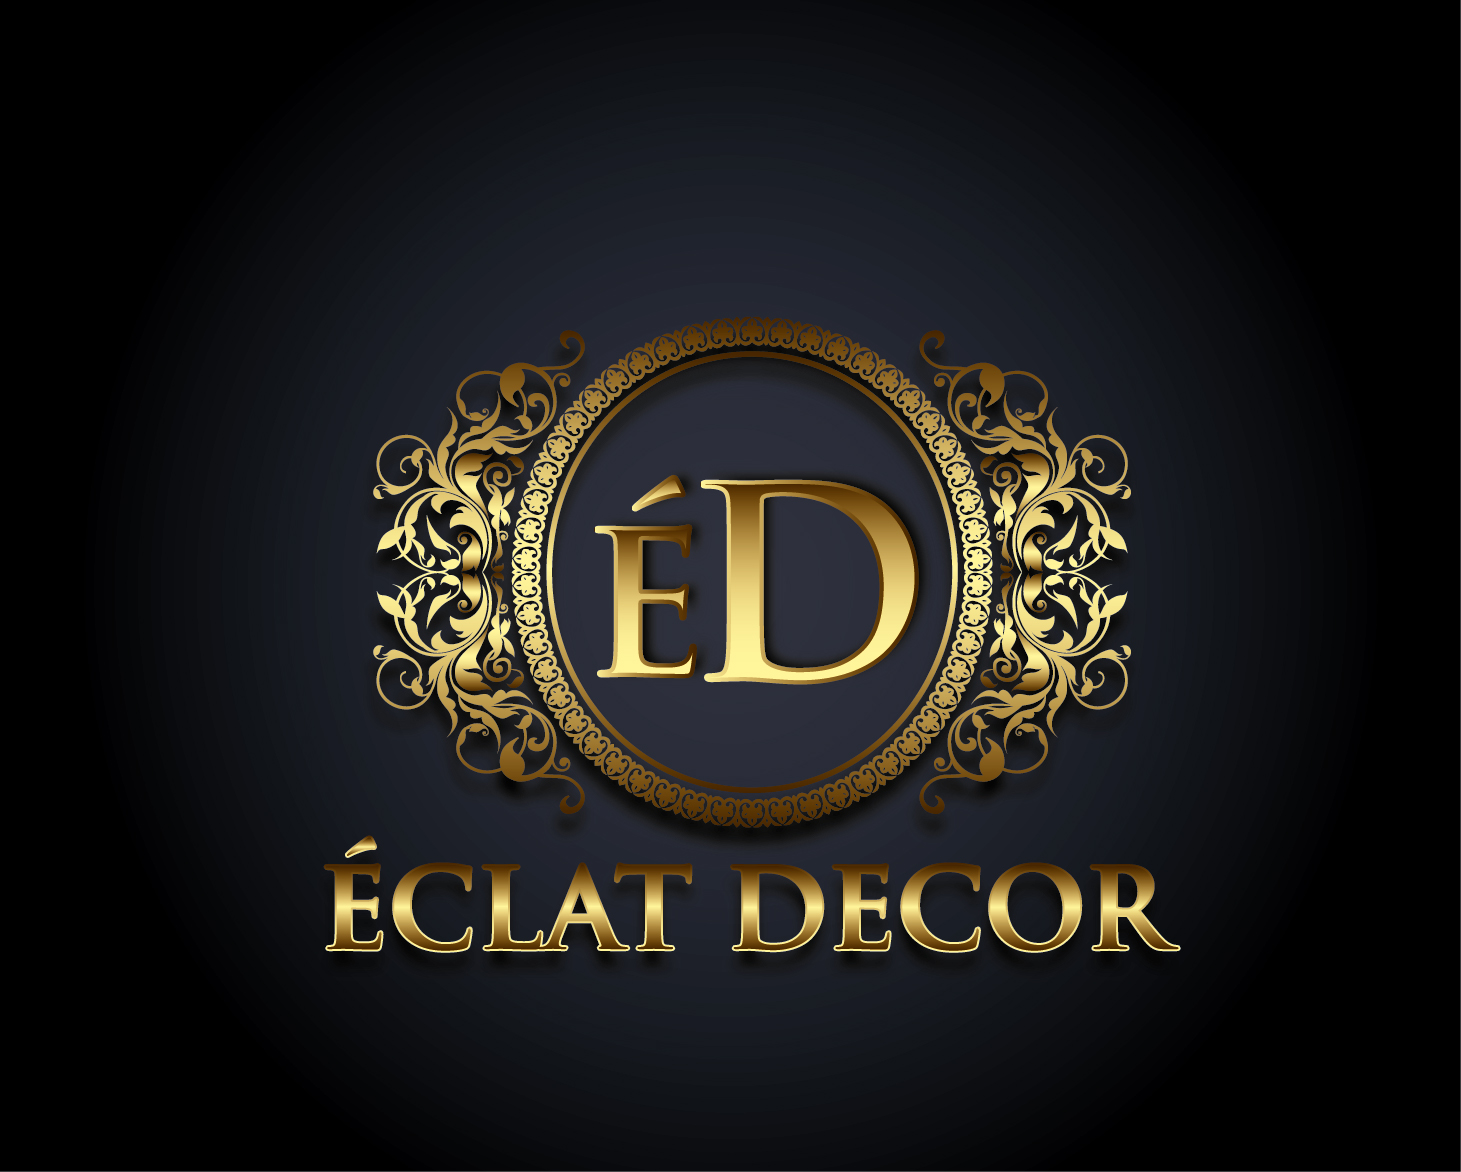 Logo Design by VENTSISLAV KOVACHEV - Entry No. 57 in the Logo Design Contest Imaginative Logo Design for Éclat Decor.